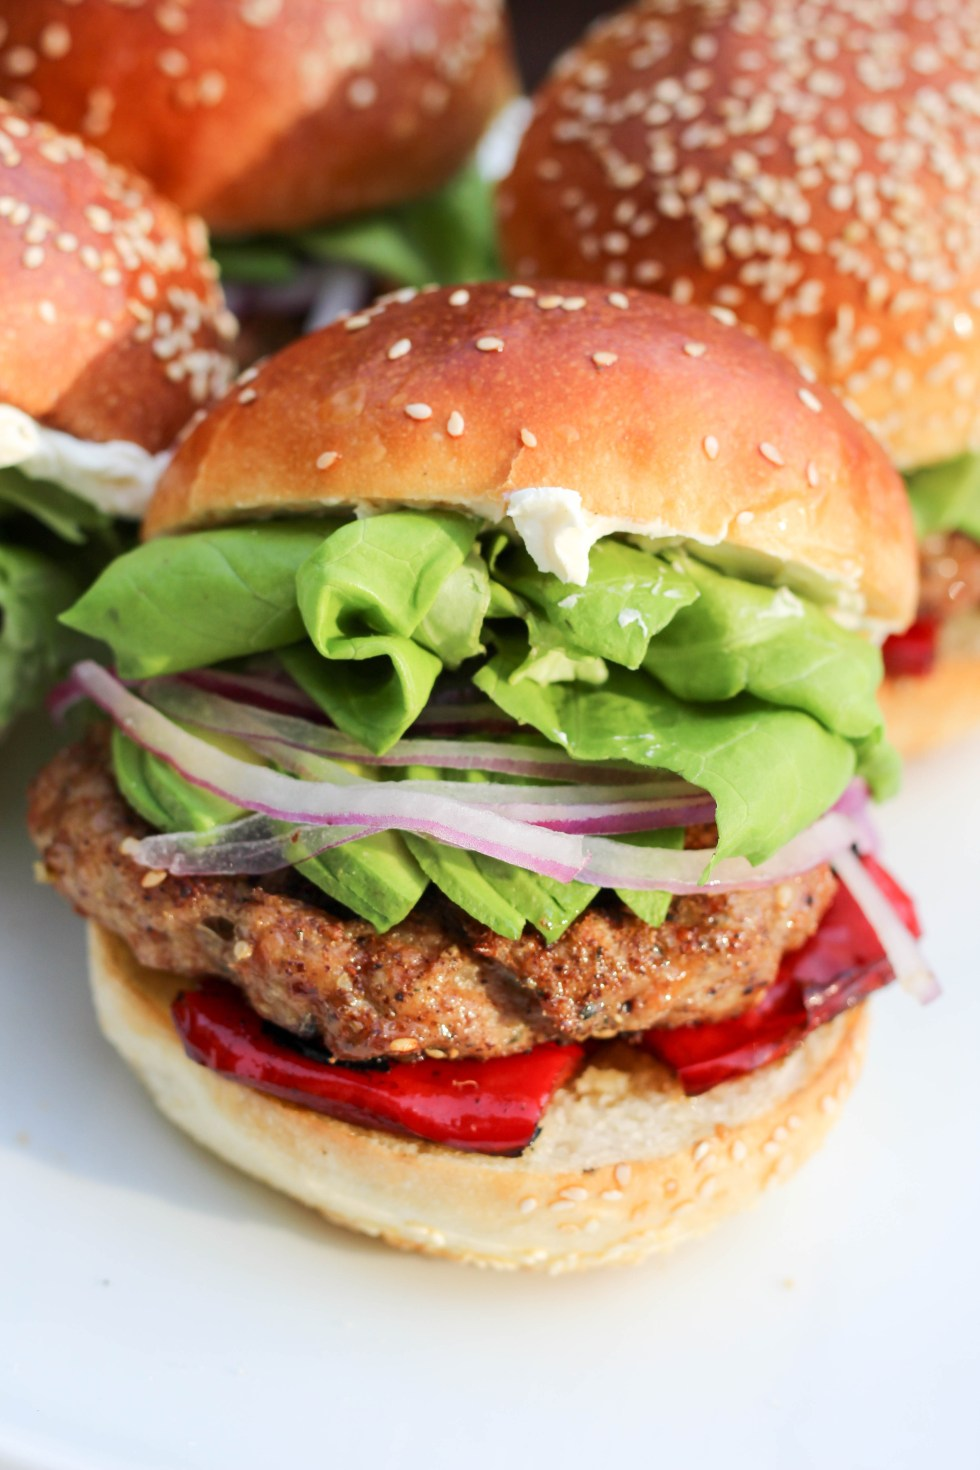 Grill up these za'atar chicken burgers this summer loaded with roasted red peppers and avocado and shmeared with labneh | POP KITCHEN